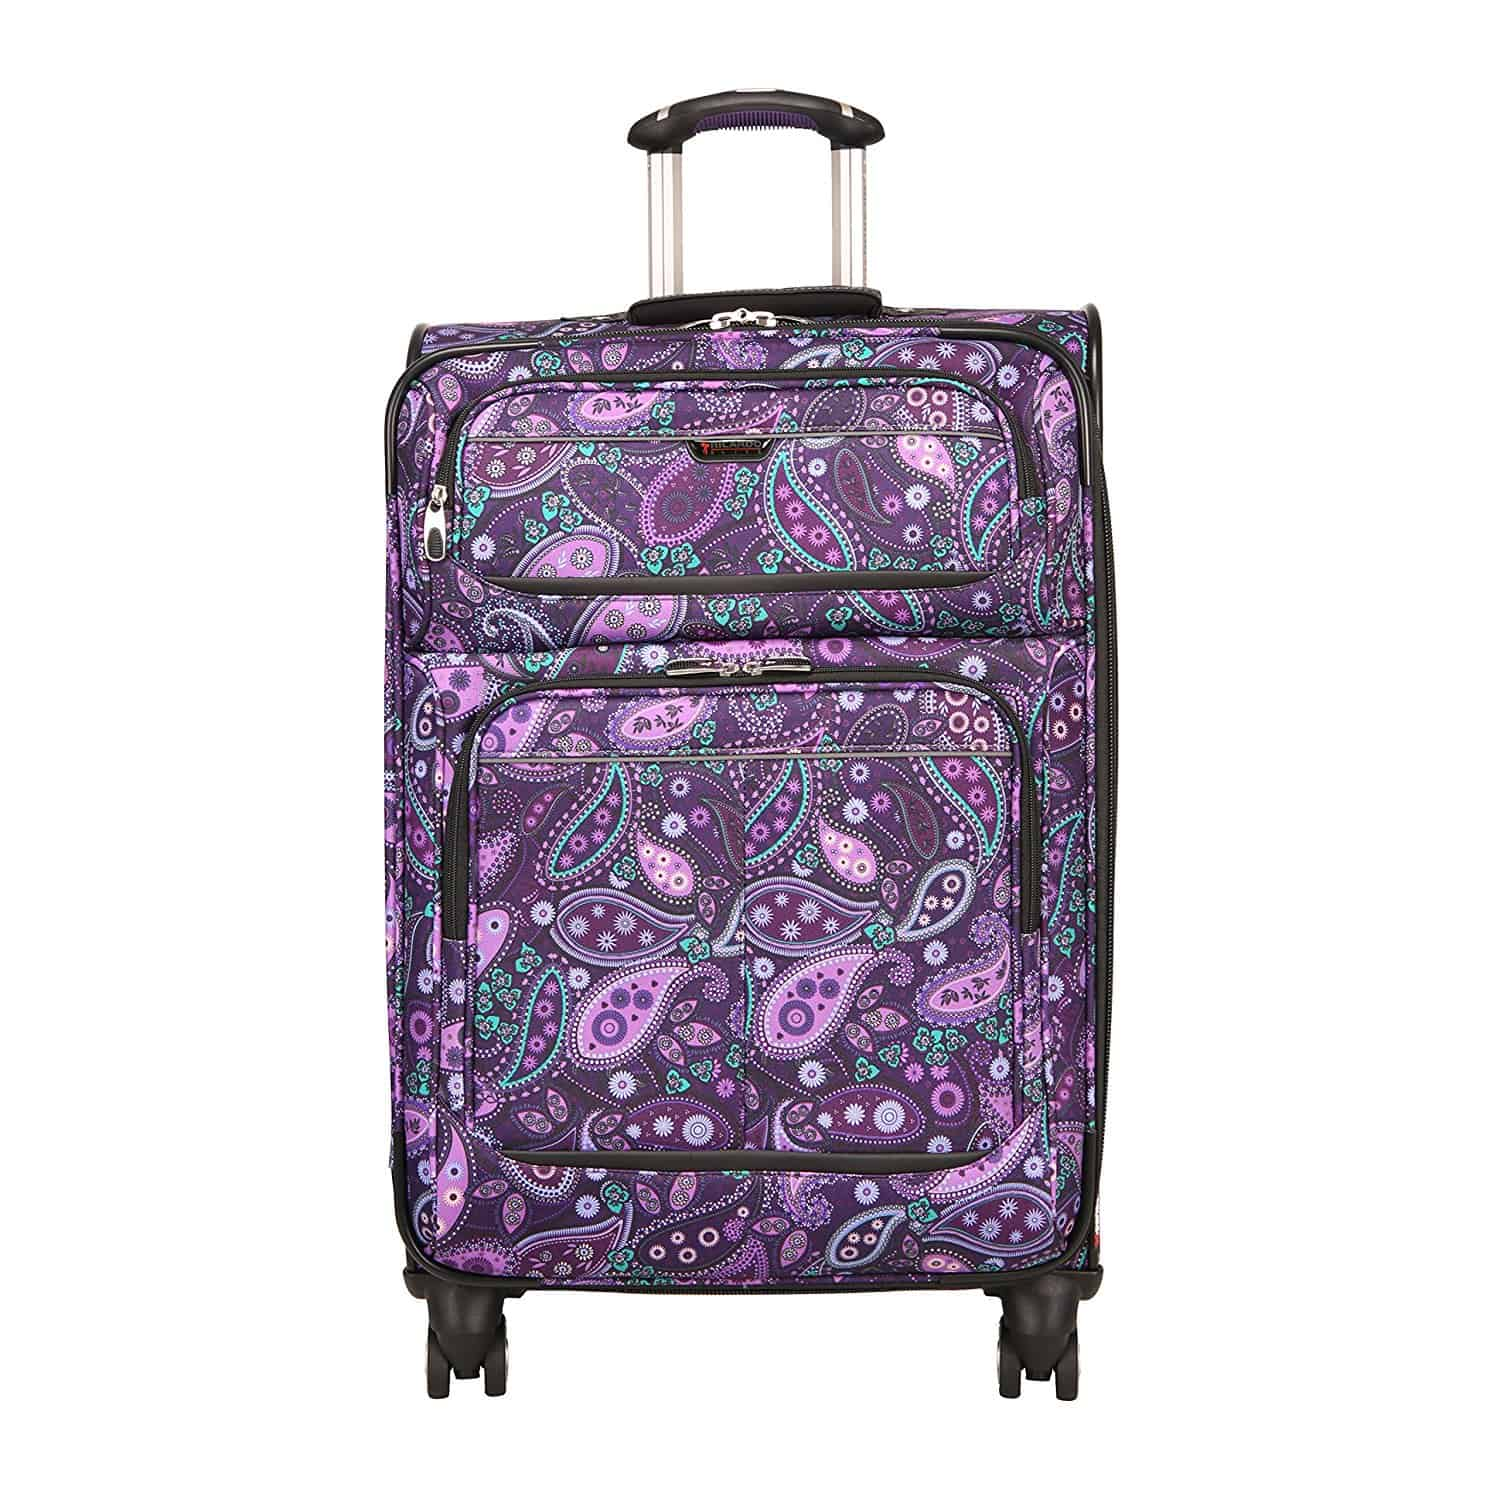 "Ricardo Beverley Hills Mar Vista 24"" Expandable Upright Suitcase"